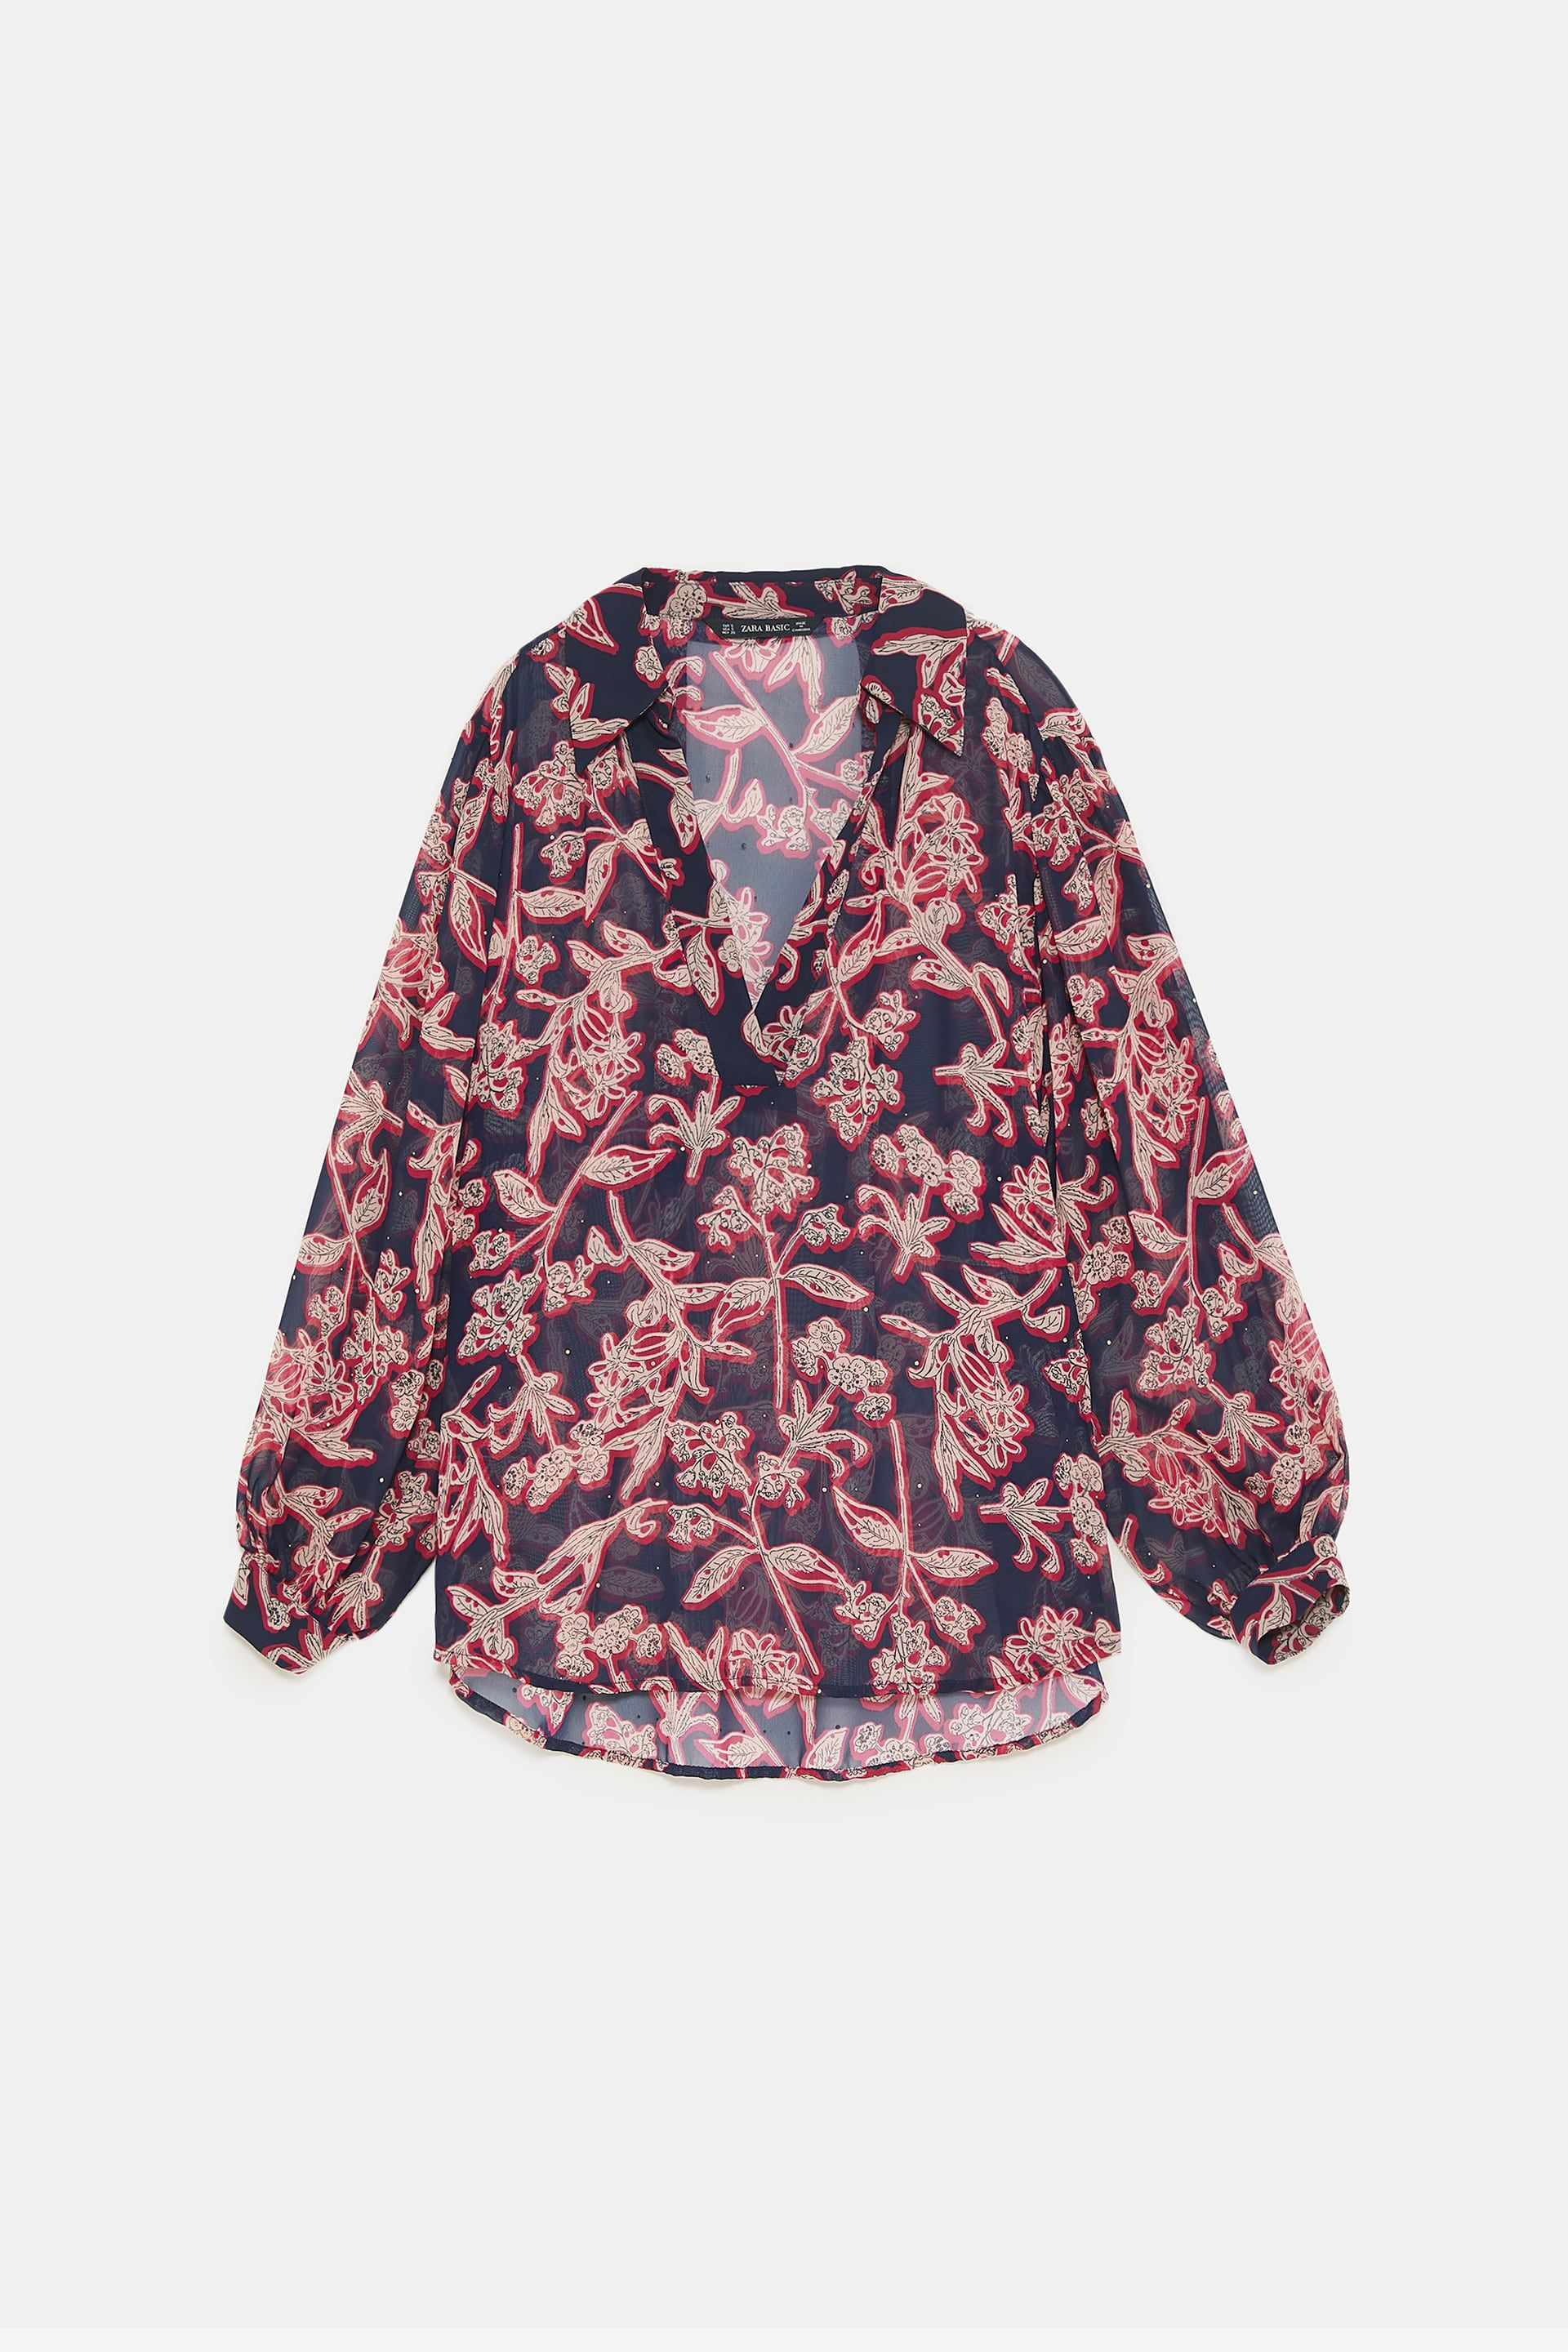 bcf54829 Image 8 of STUDDED FLORAL PRINT BLOUSE from Zara | fw18 | Printed ...